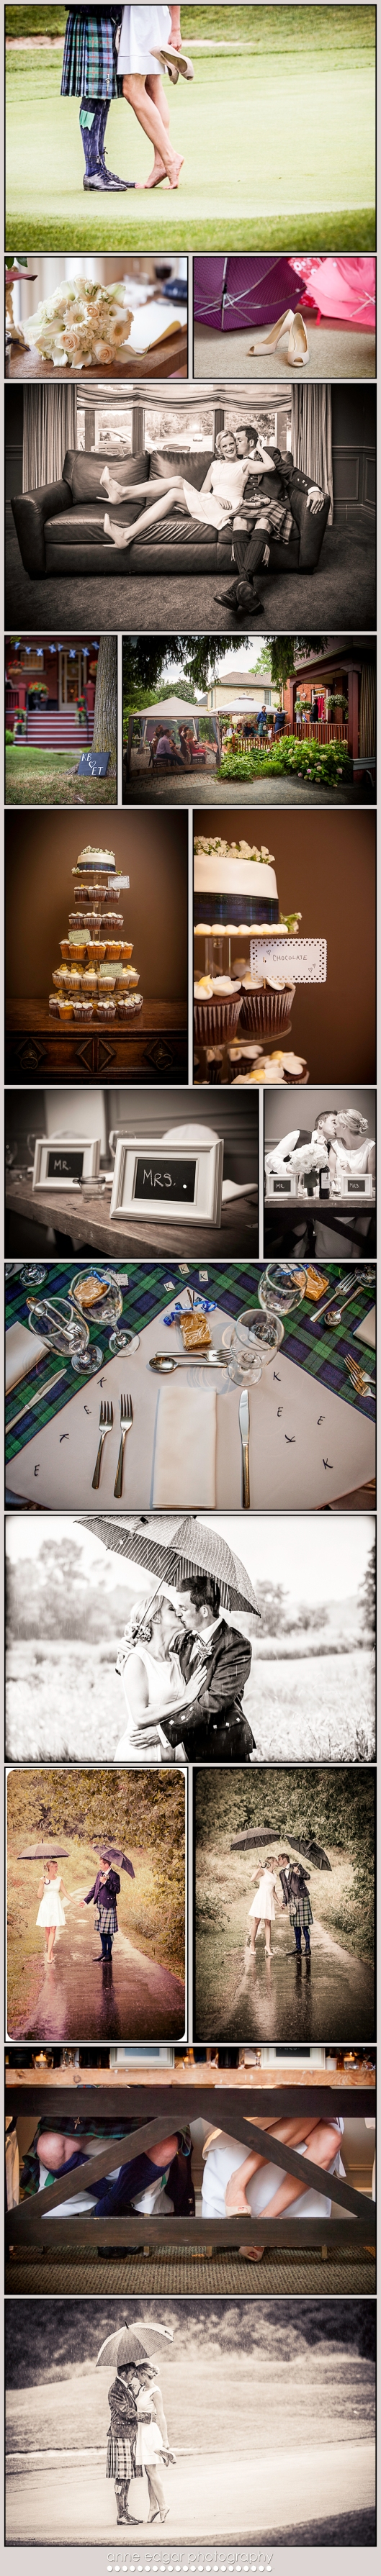 Scottish Canadian wedding, blue and green tartan